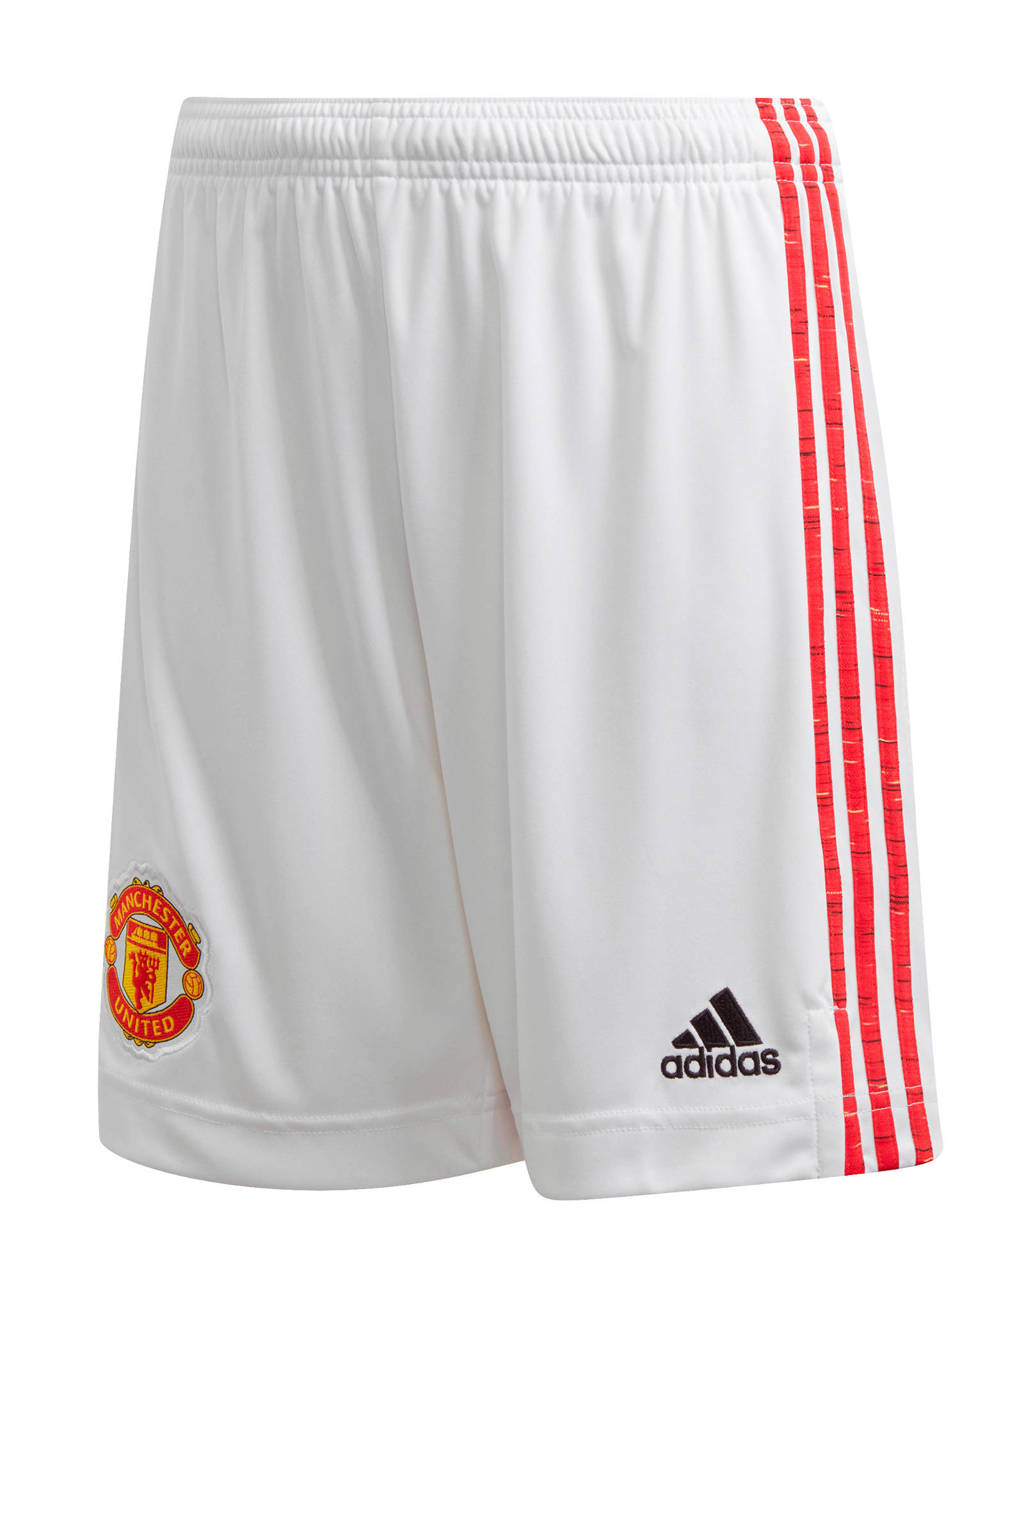 adidas Performance Junior Manchester United thuis short wit/rood, Wit/rood